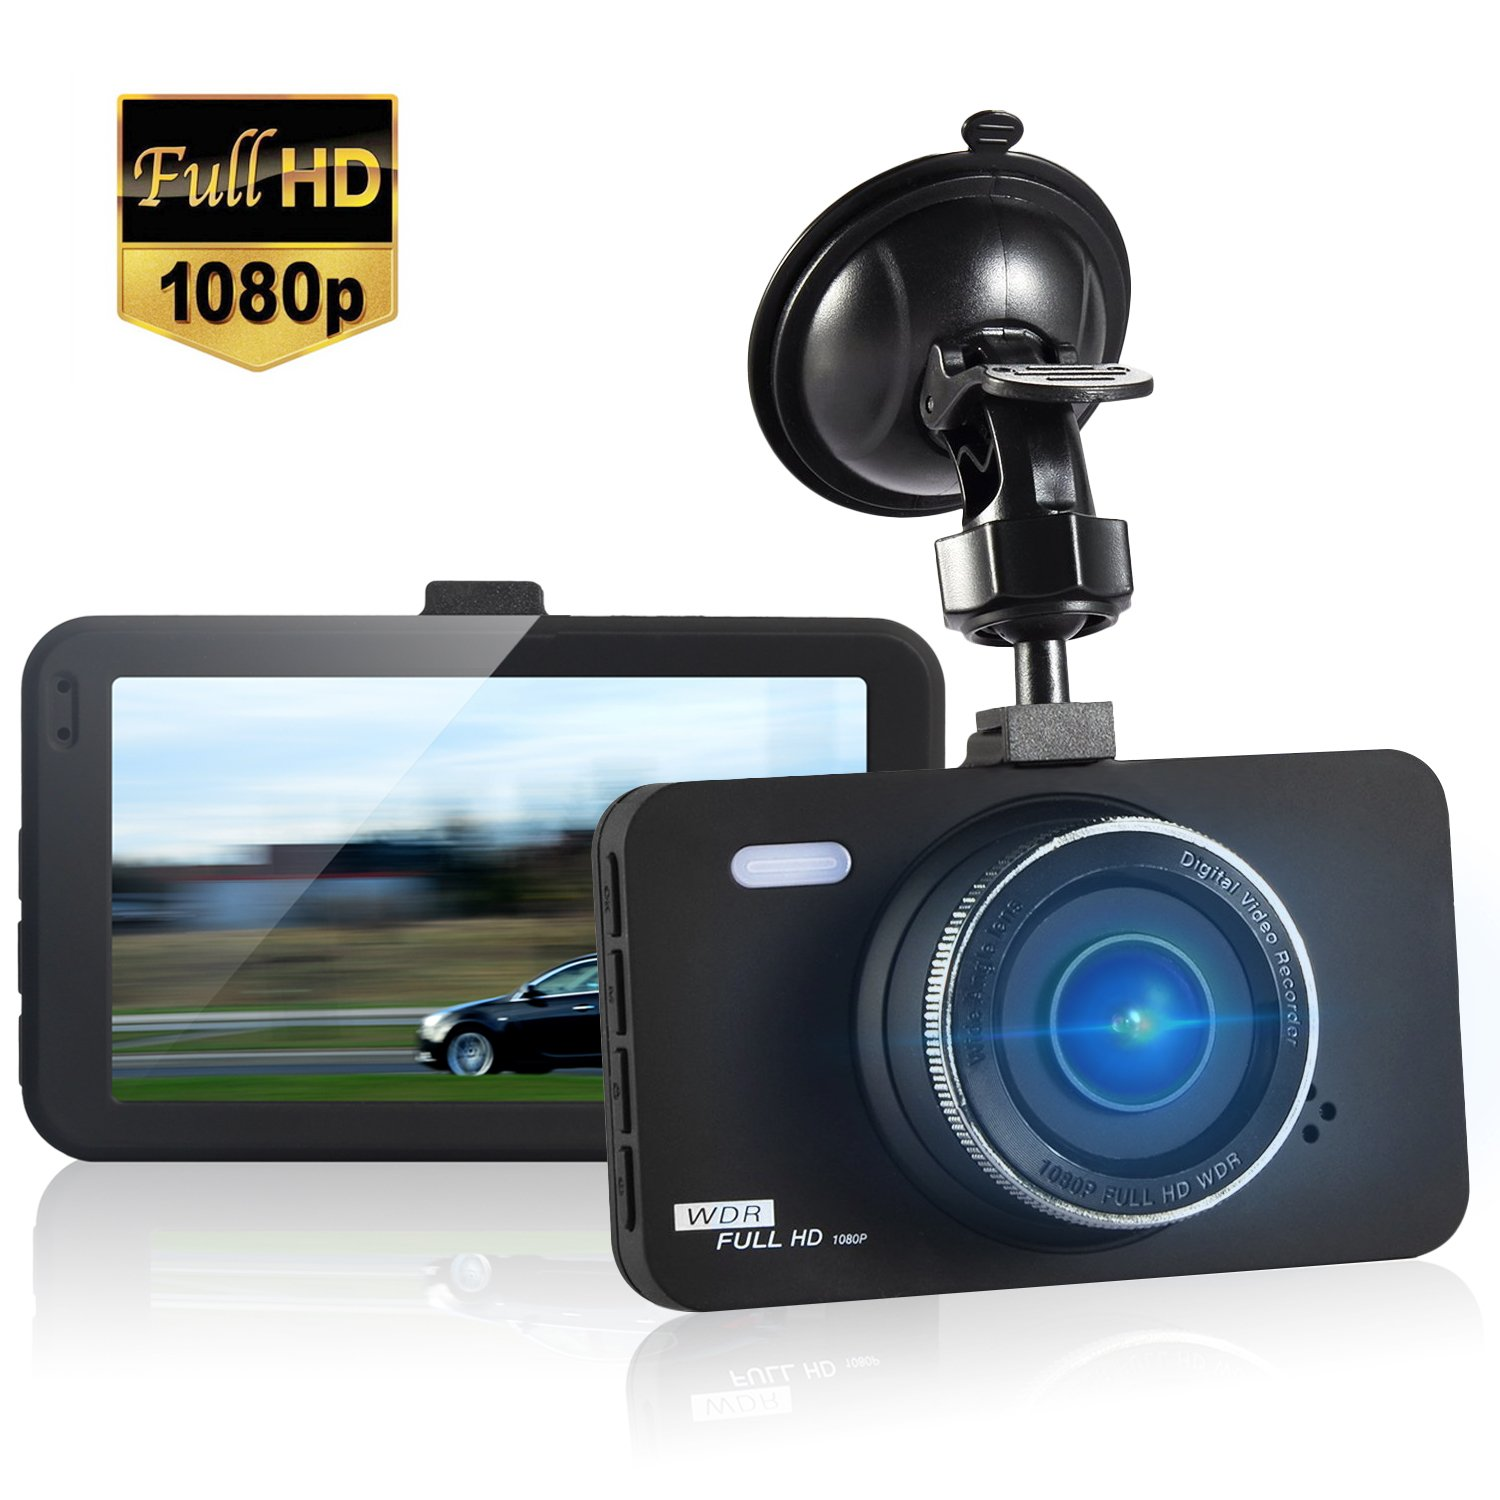 Dash Cam 3 LCD FHD 1080P 170 Degree Wide Angle Dashboard Camera Car Recorder DVR with 16GB SD Card,Night Vision WDR,Loop Recording G-Sensor